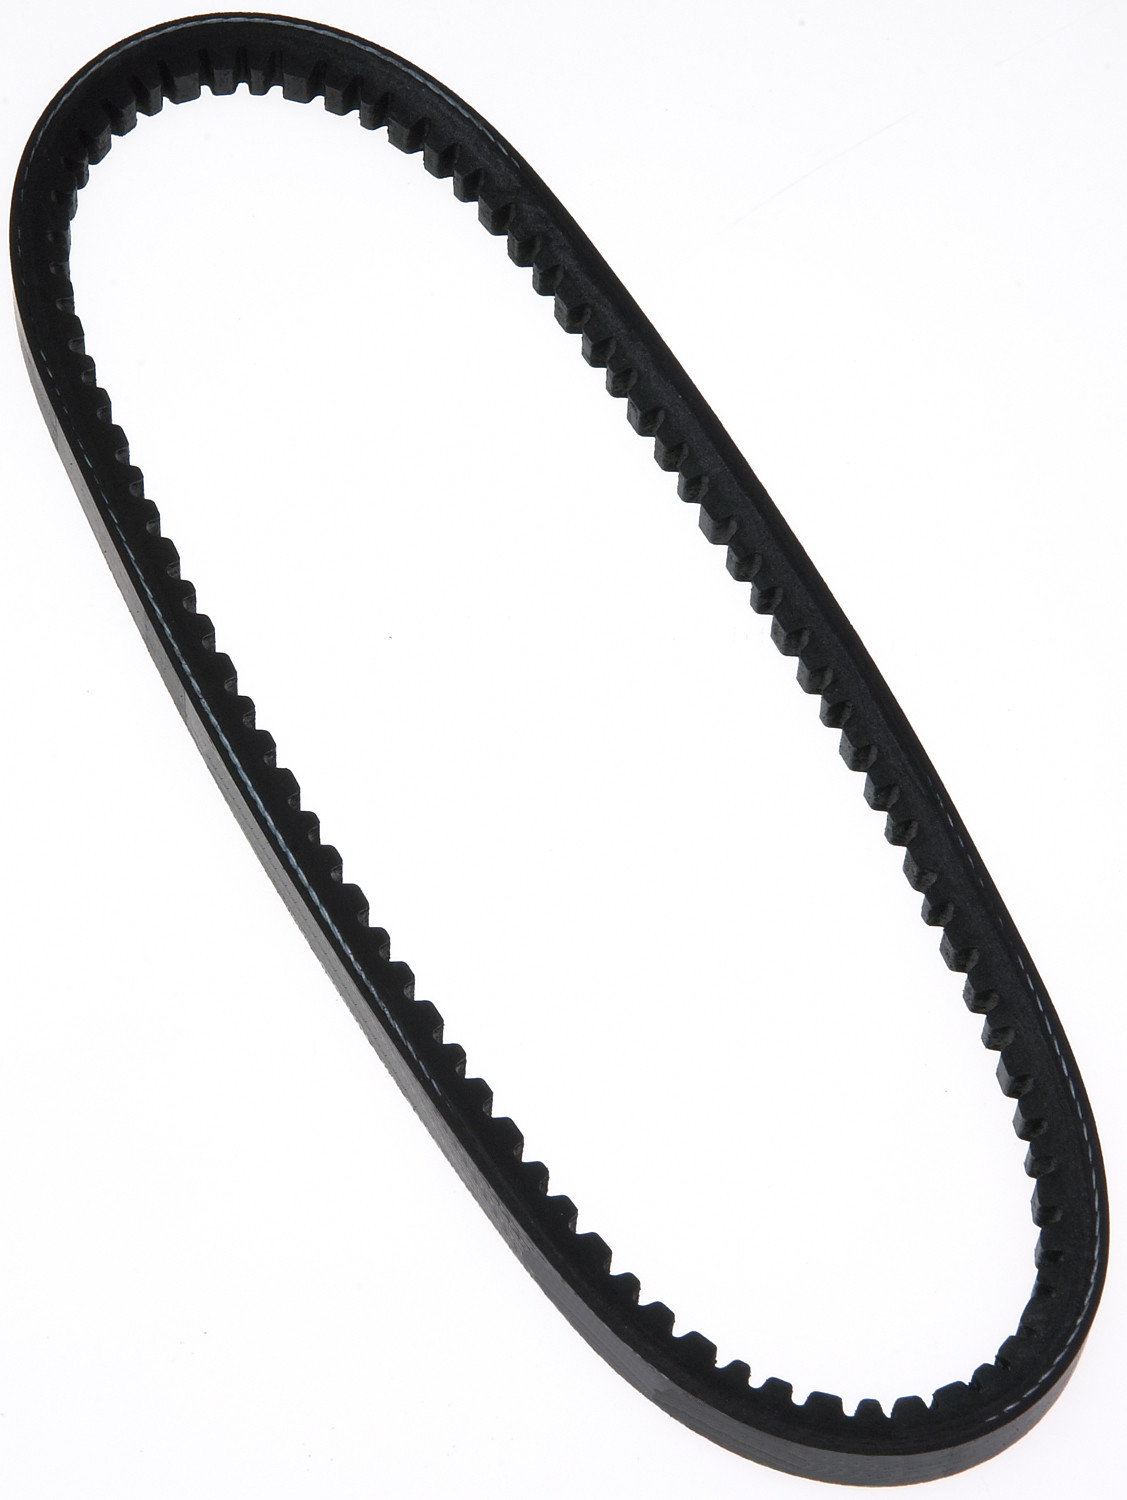 ROADMAX - High Capacity V-belt(standard) - RMX 17245AP